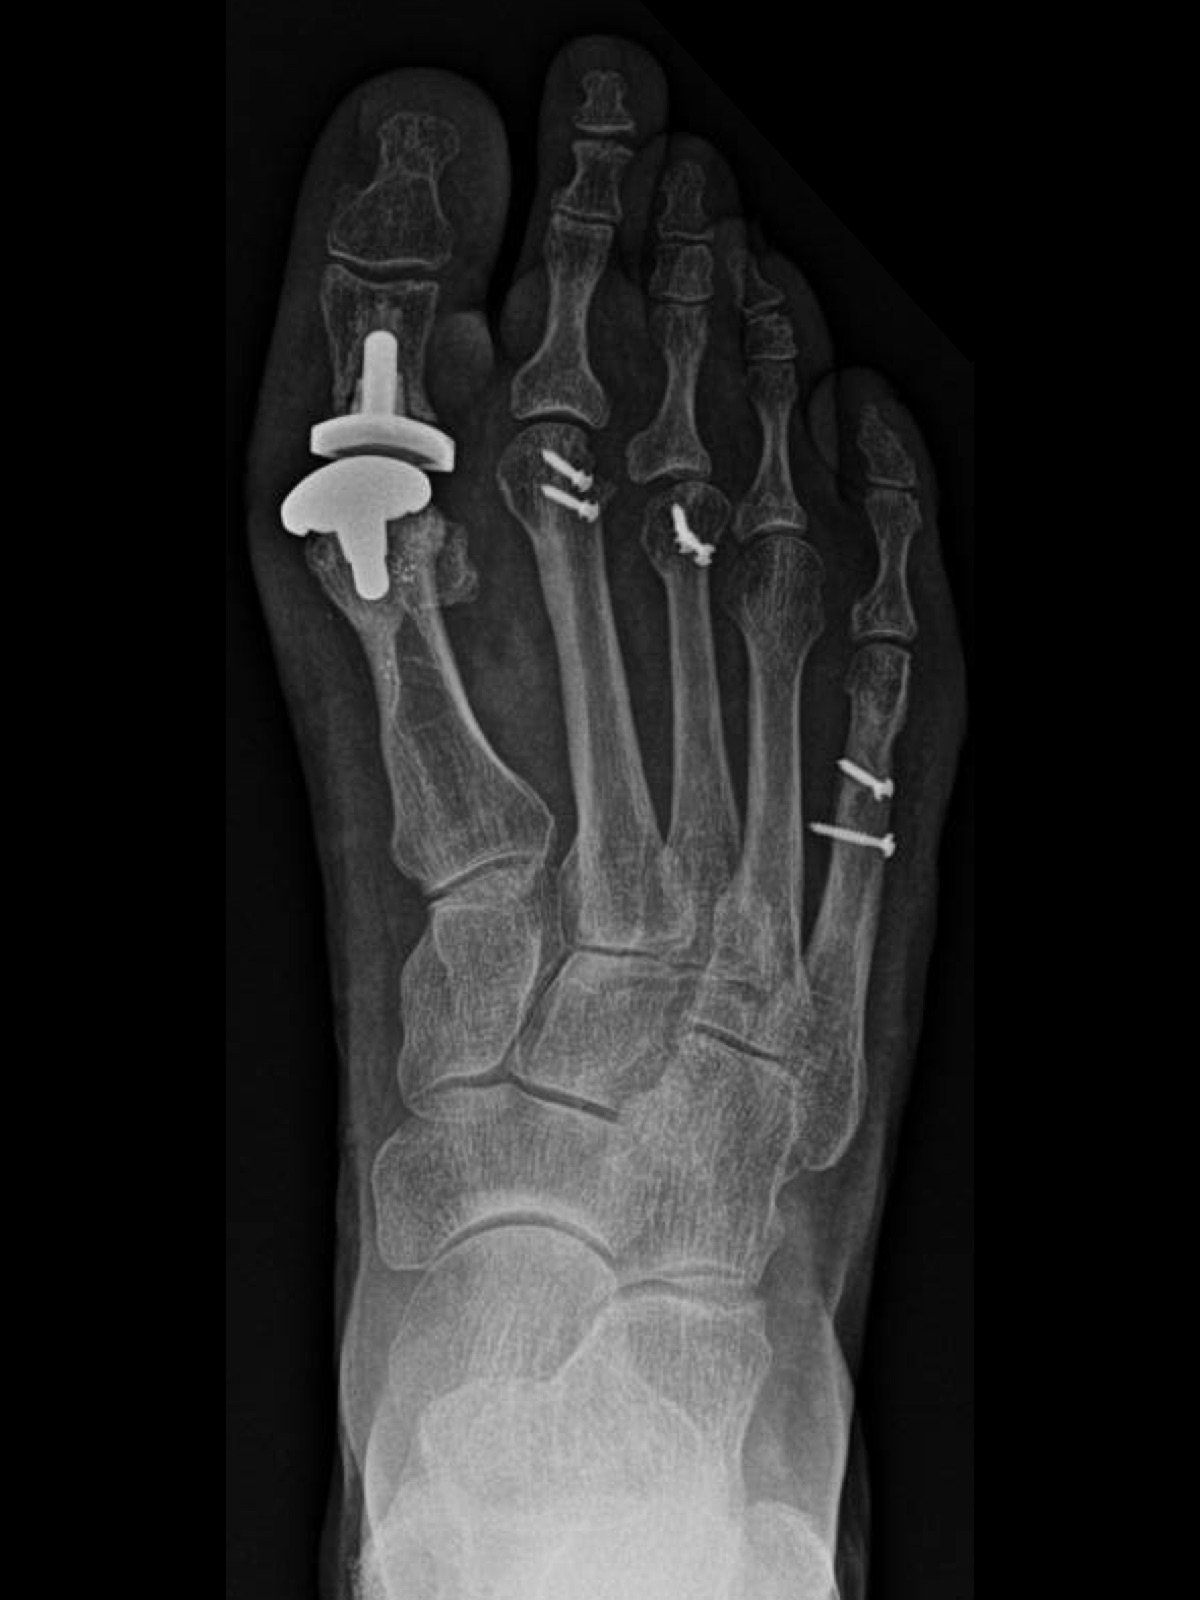 In 2016, the patient had explantation of the hemi-implant with conversion to a two-component total joint prosthesis (Movement Great Toe System, Integra LifeSciences) and shortening osteotomies of her second, third and fifth metatarsals.